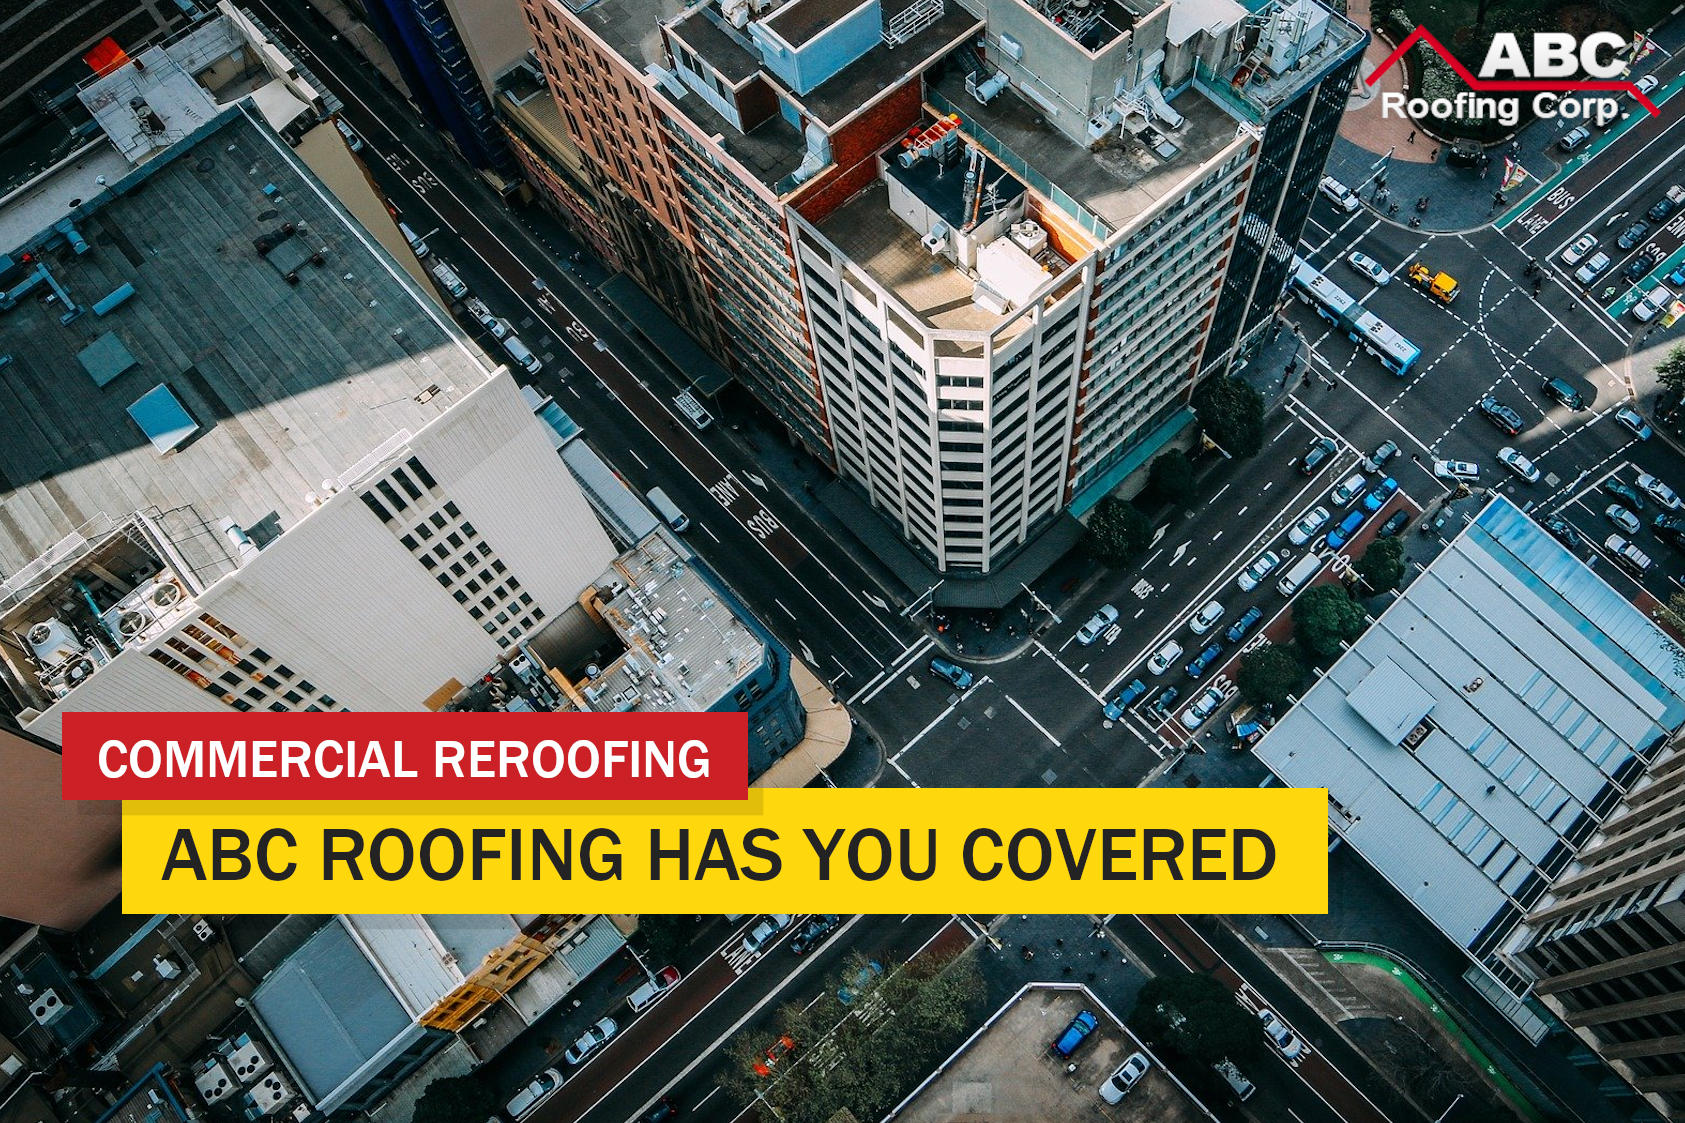 Commercial Reroofing